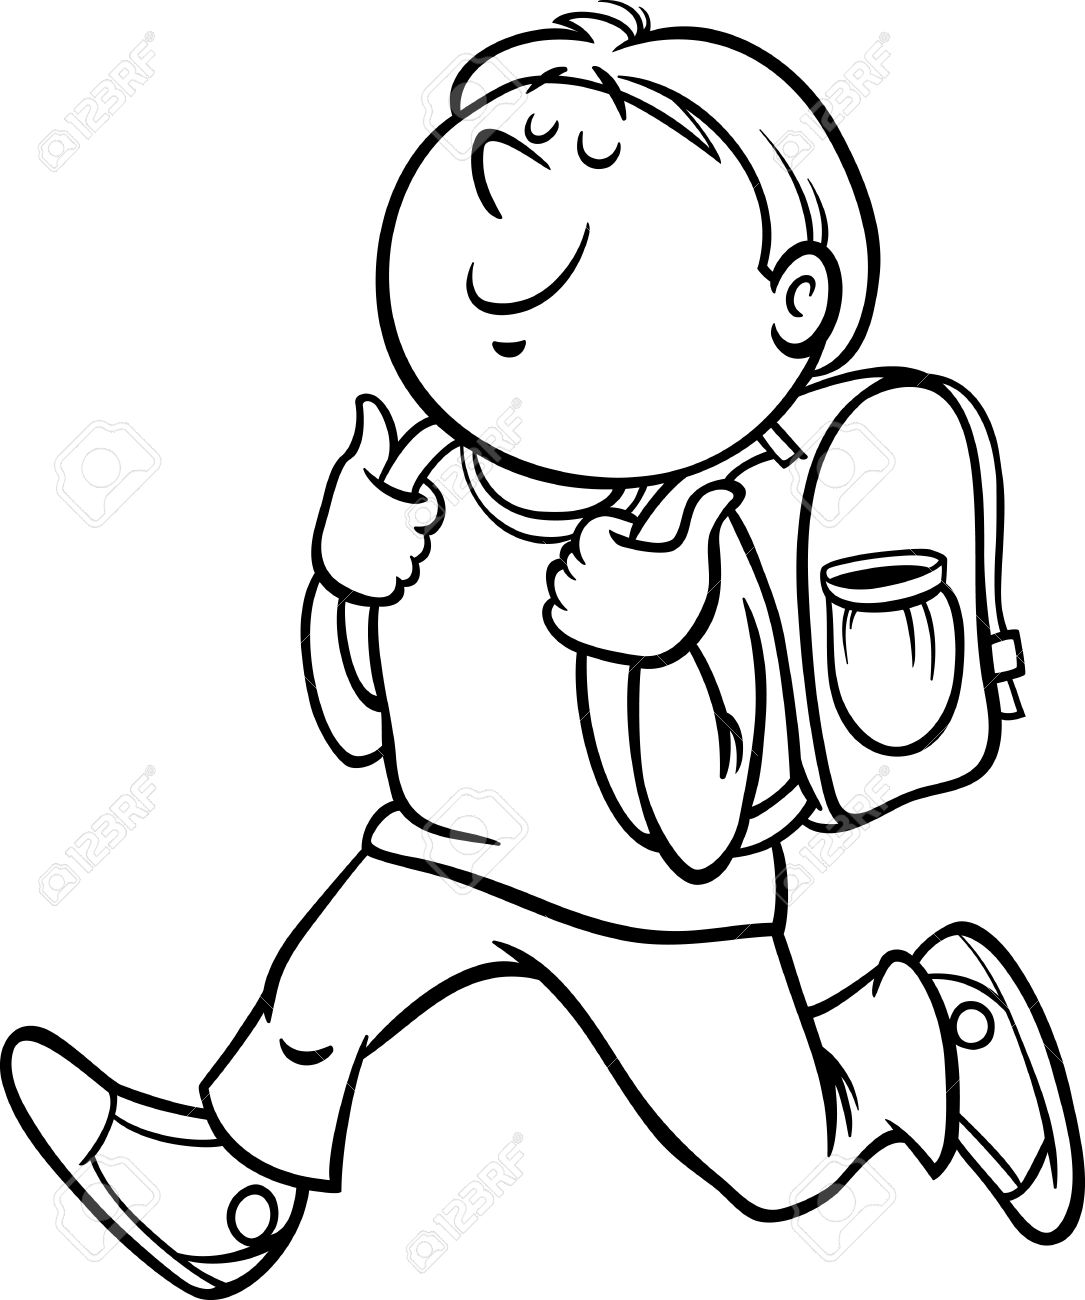 student coloring clipart walking school boy coloring page free printable coloring student clipart coloring